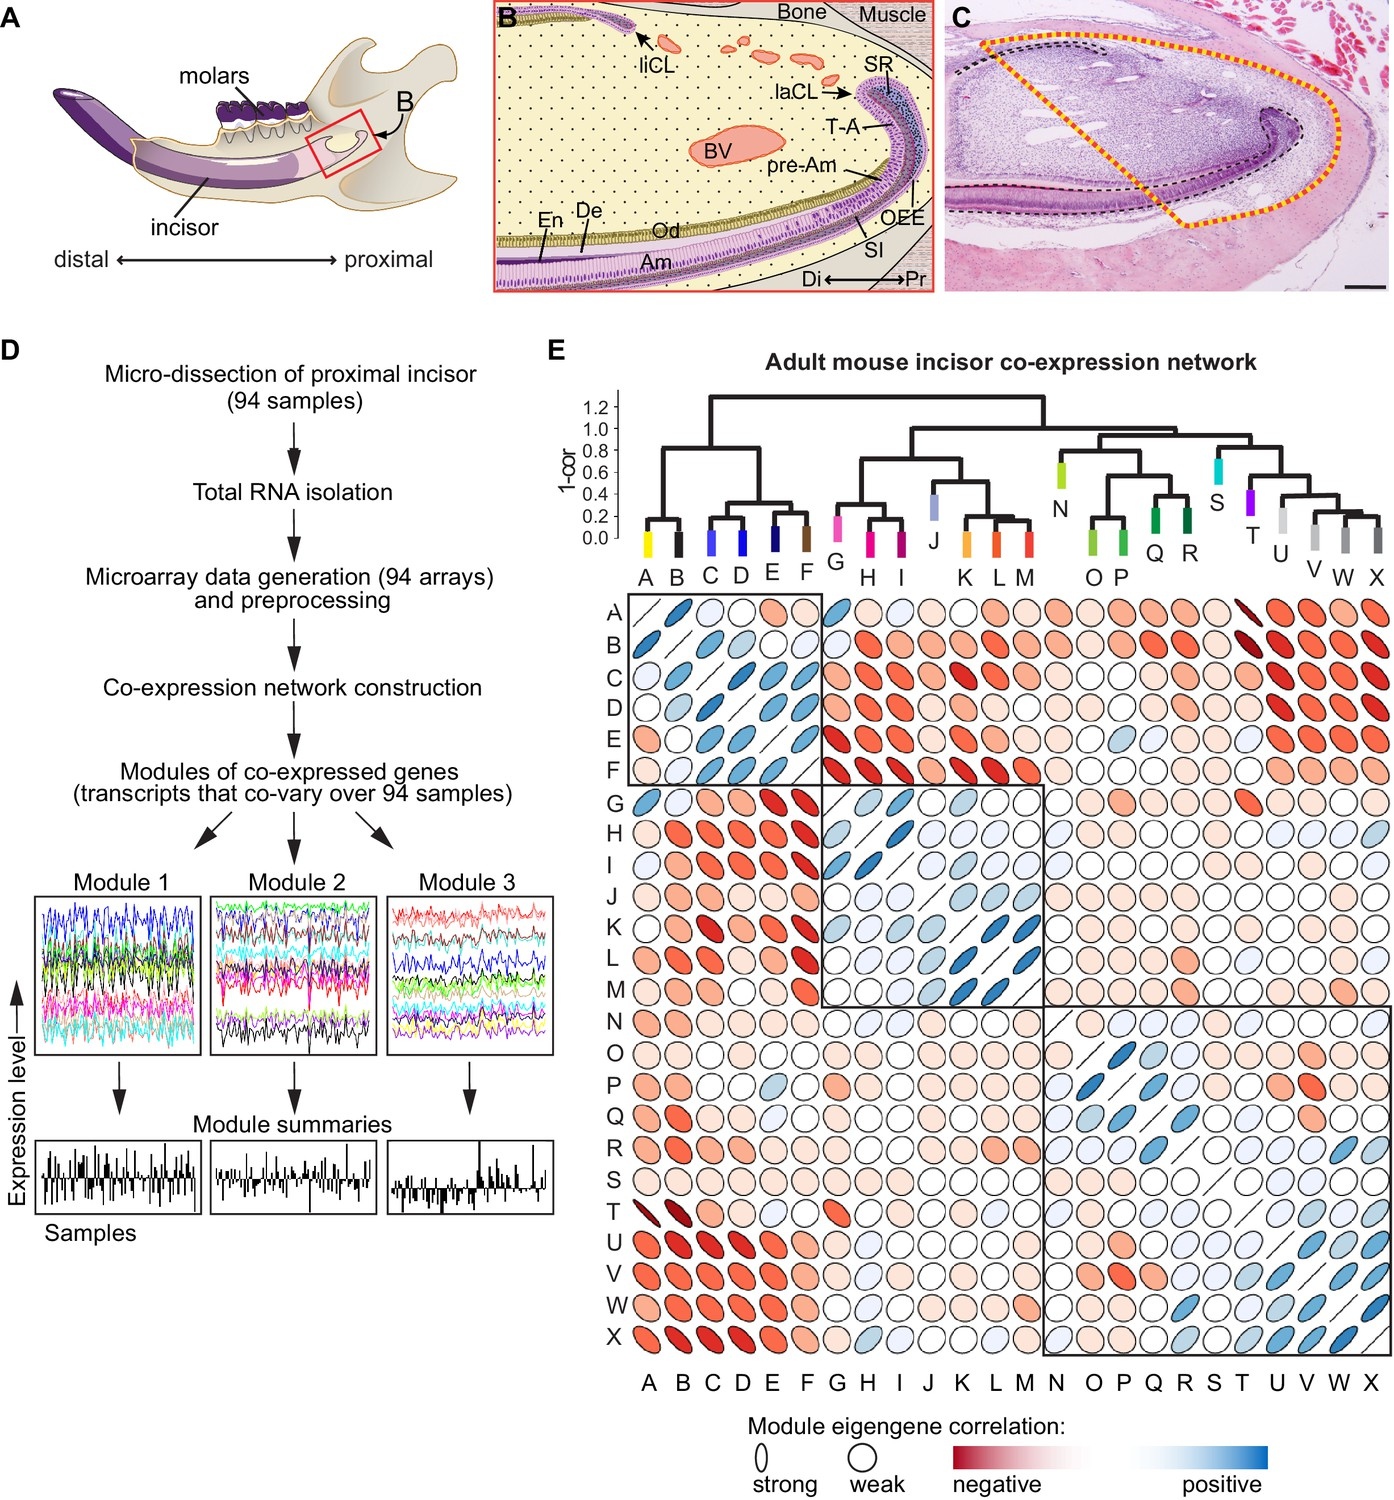 hight resolution of analysis of transcriptional co variation in adult mouse incisor reveals gene co expression modules